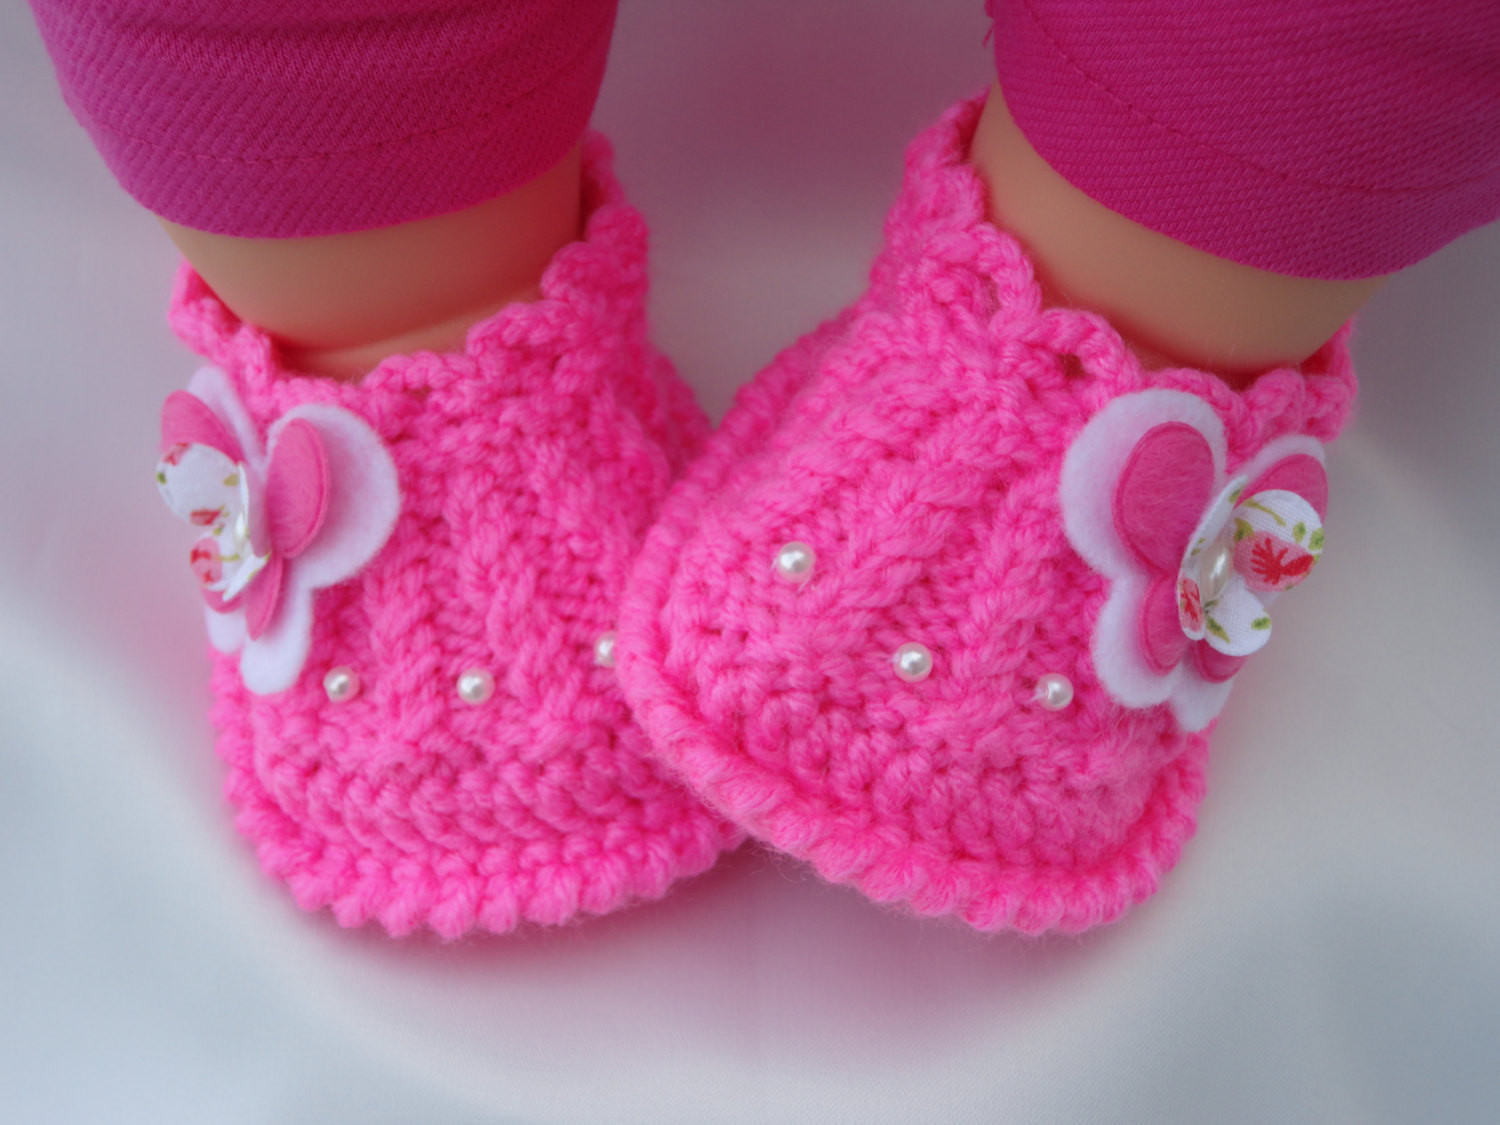 Knitted Baby Shoes Awesome Meryem Uzerli Hand Knitted Baby Girl Shoes Of Attractive 40 Pics Knitted Baby Shoes